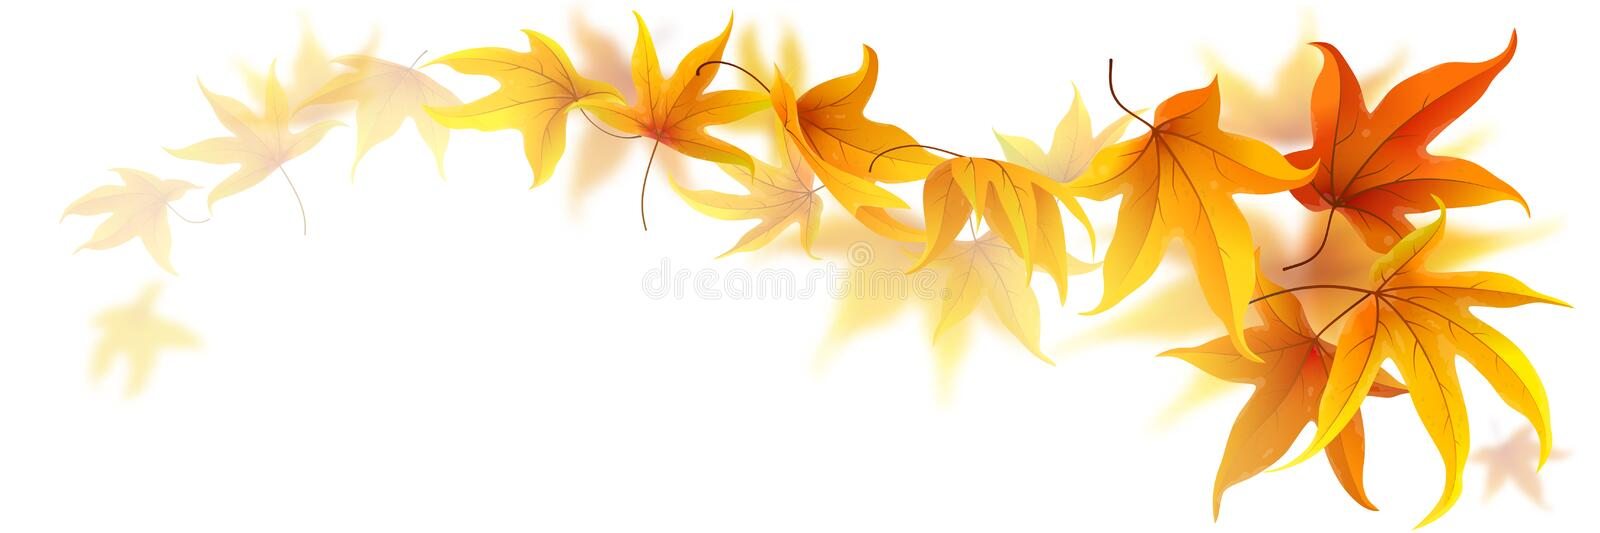 Swirl of autumn leaves stock illustration